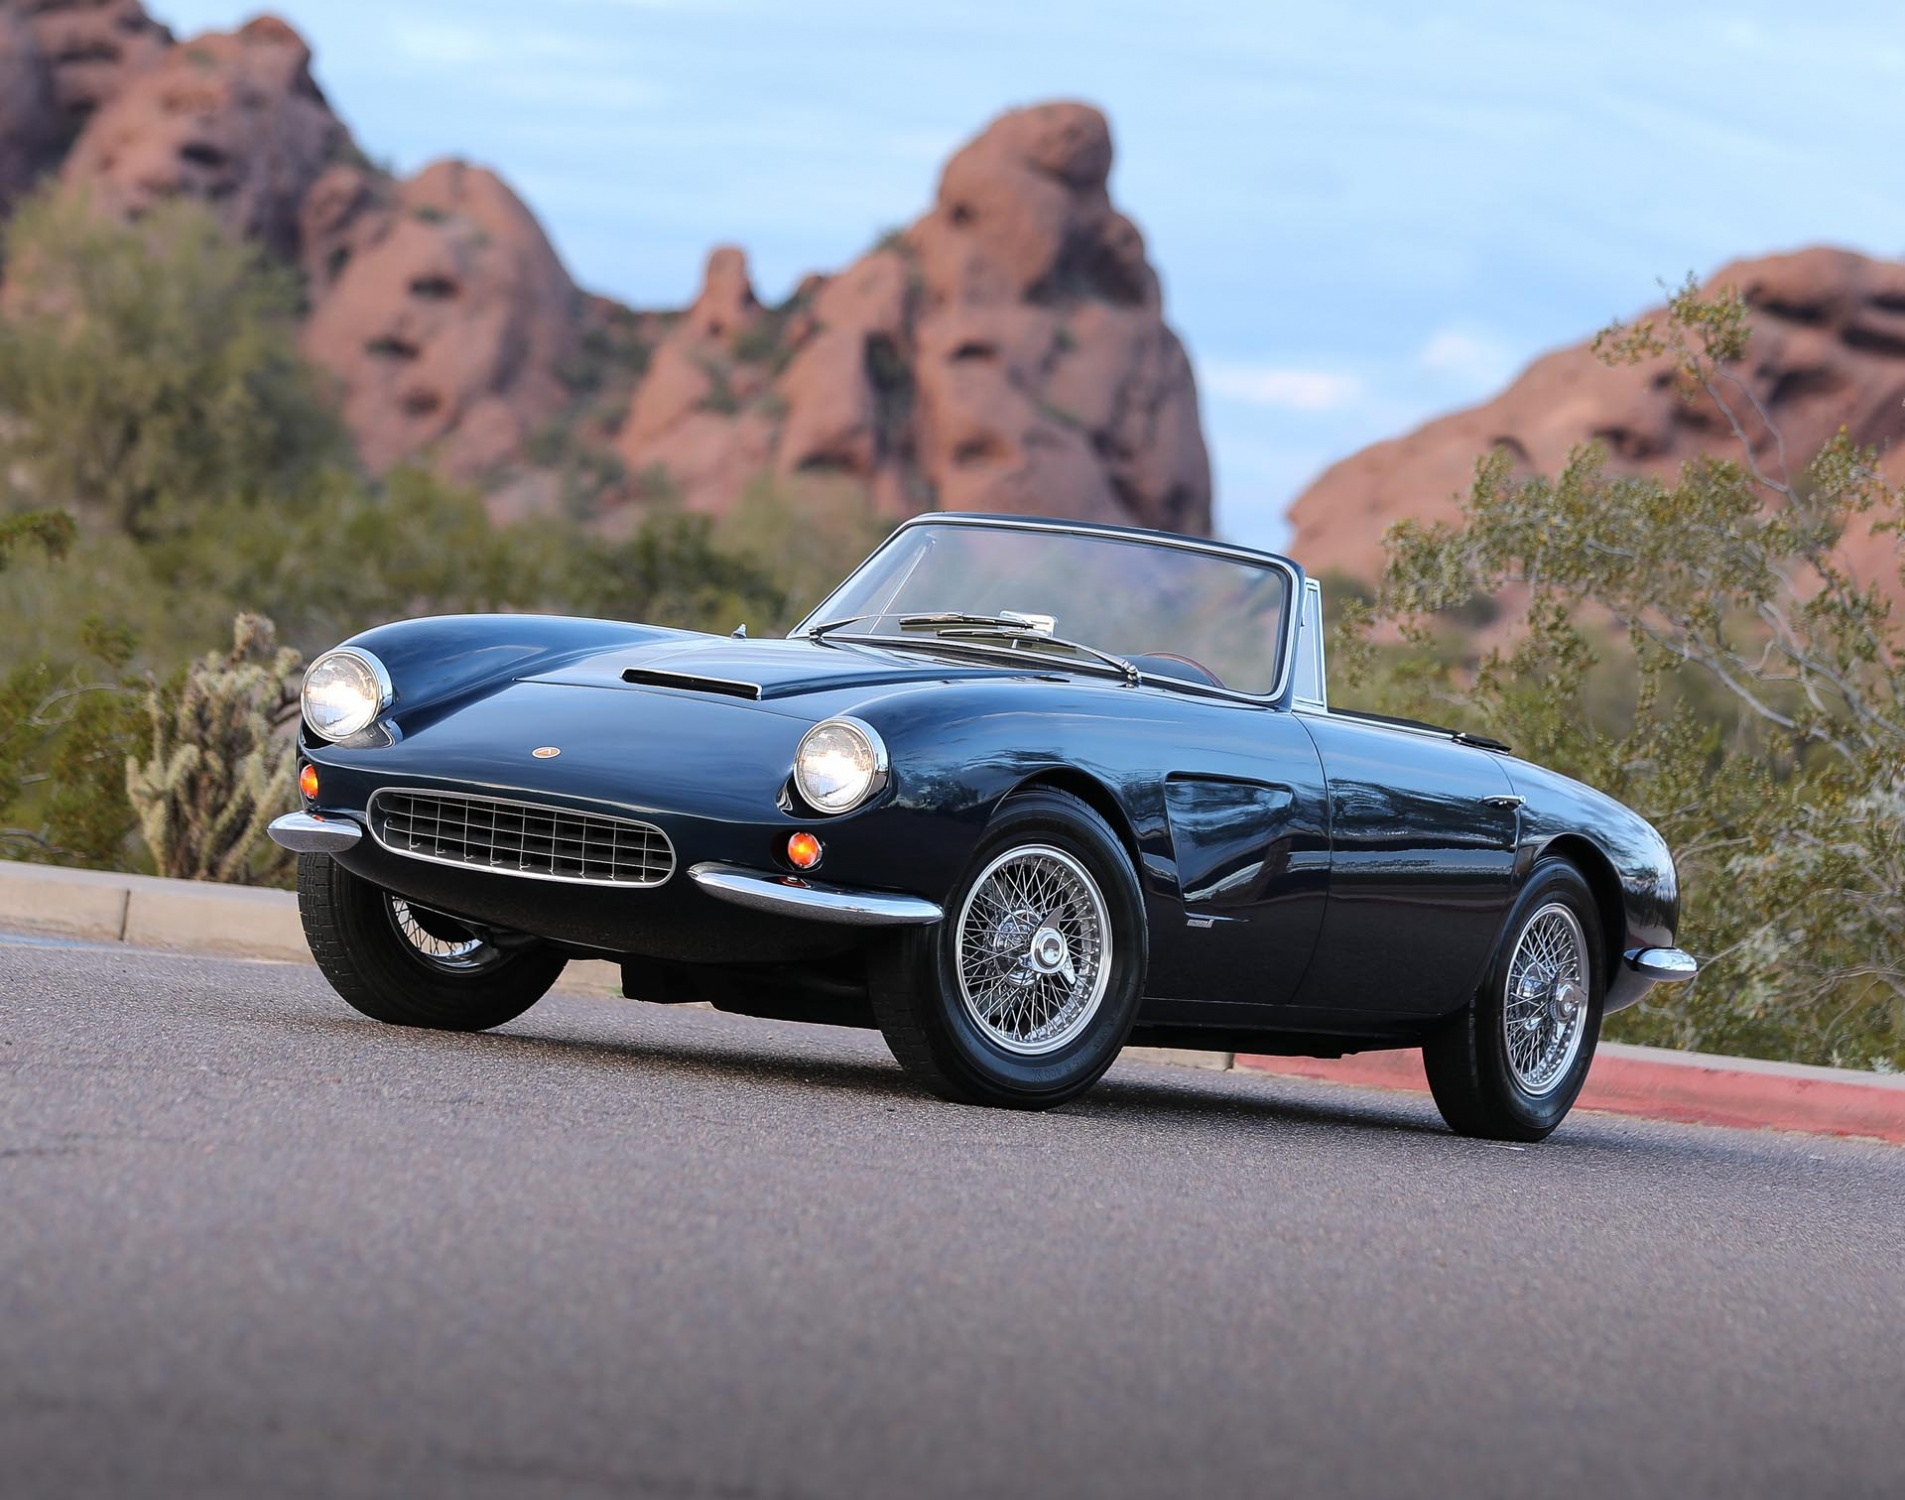 Worldwide Auctioneers sets new world records for Apollo prices and delivers $5.6 million in total sales at The Corpus Christi Old Car Museum Auction